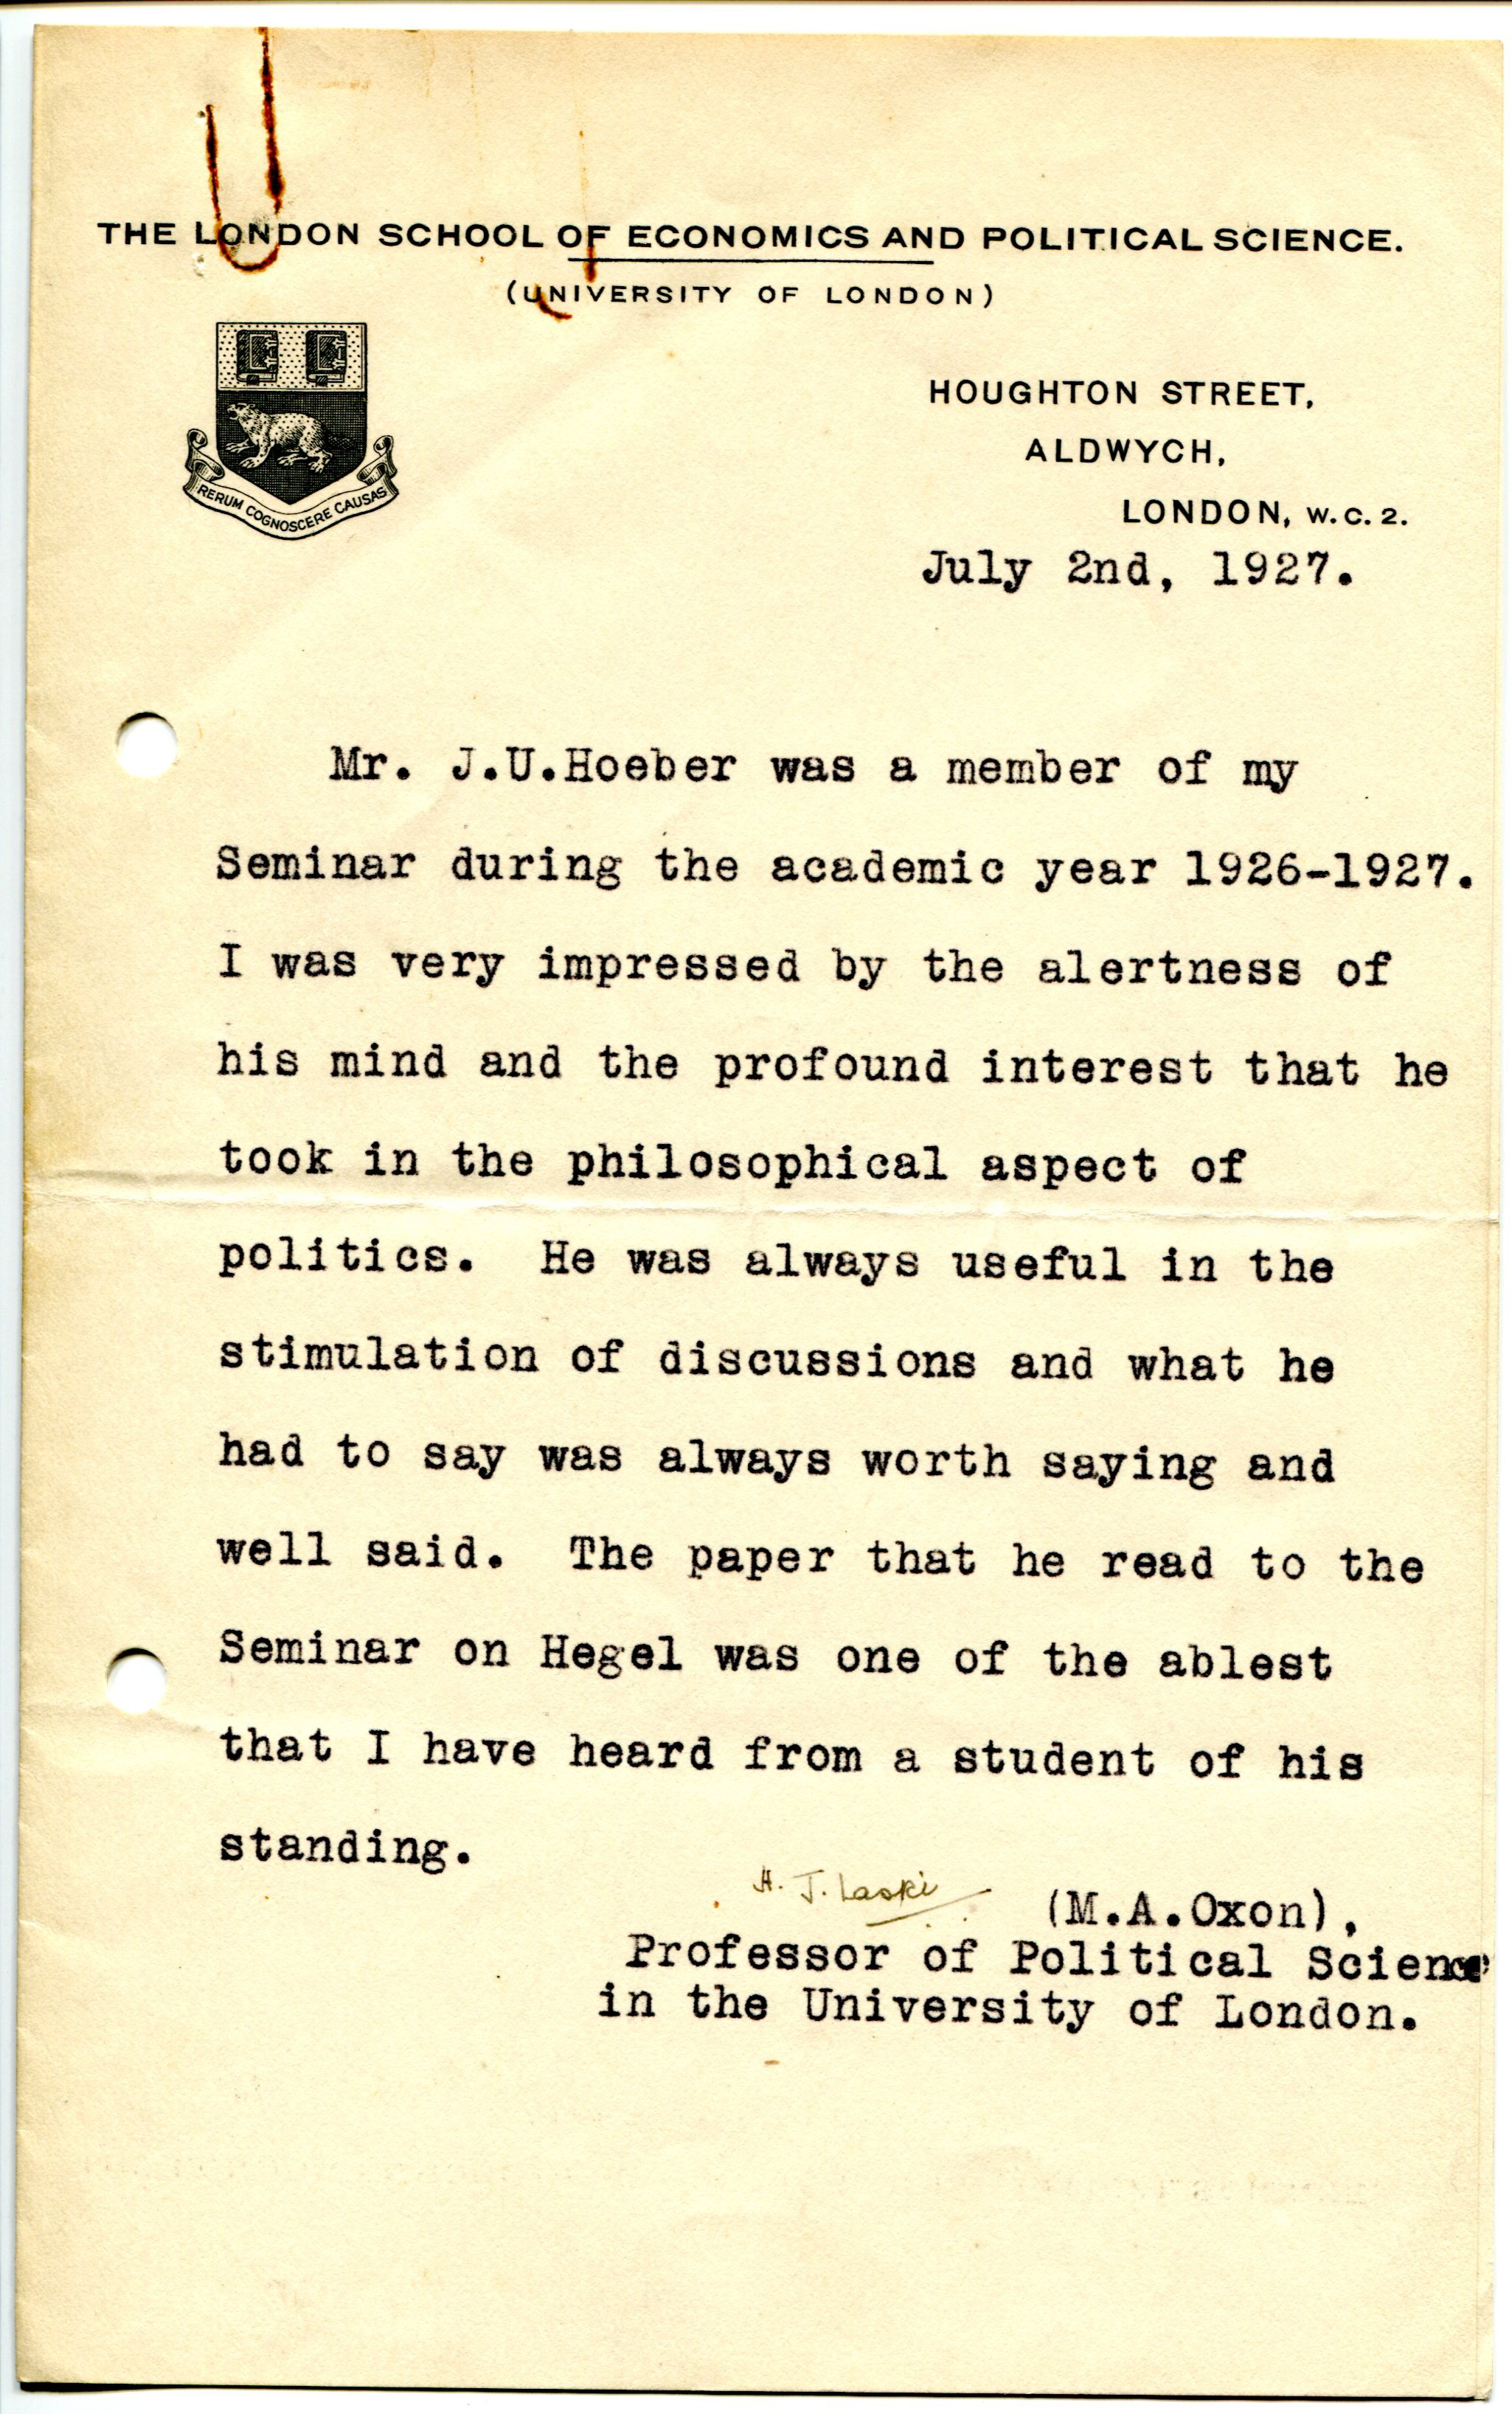 Academic Recommendation Letter Sample Harold Laski Recommendation 2july1927